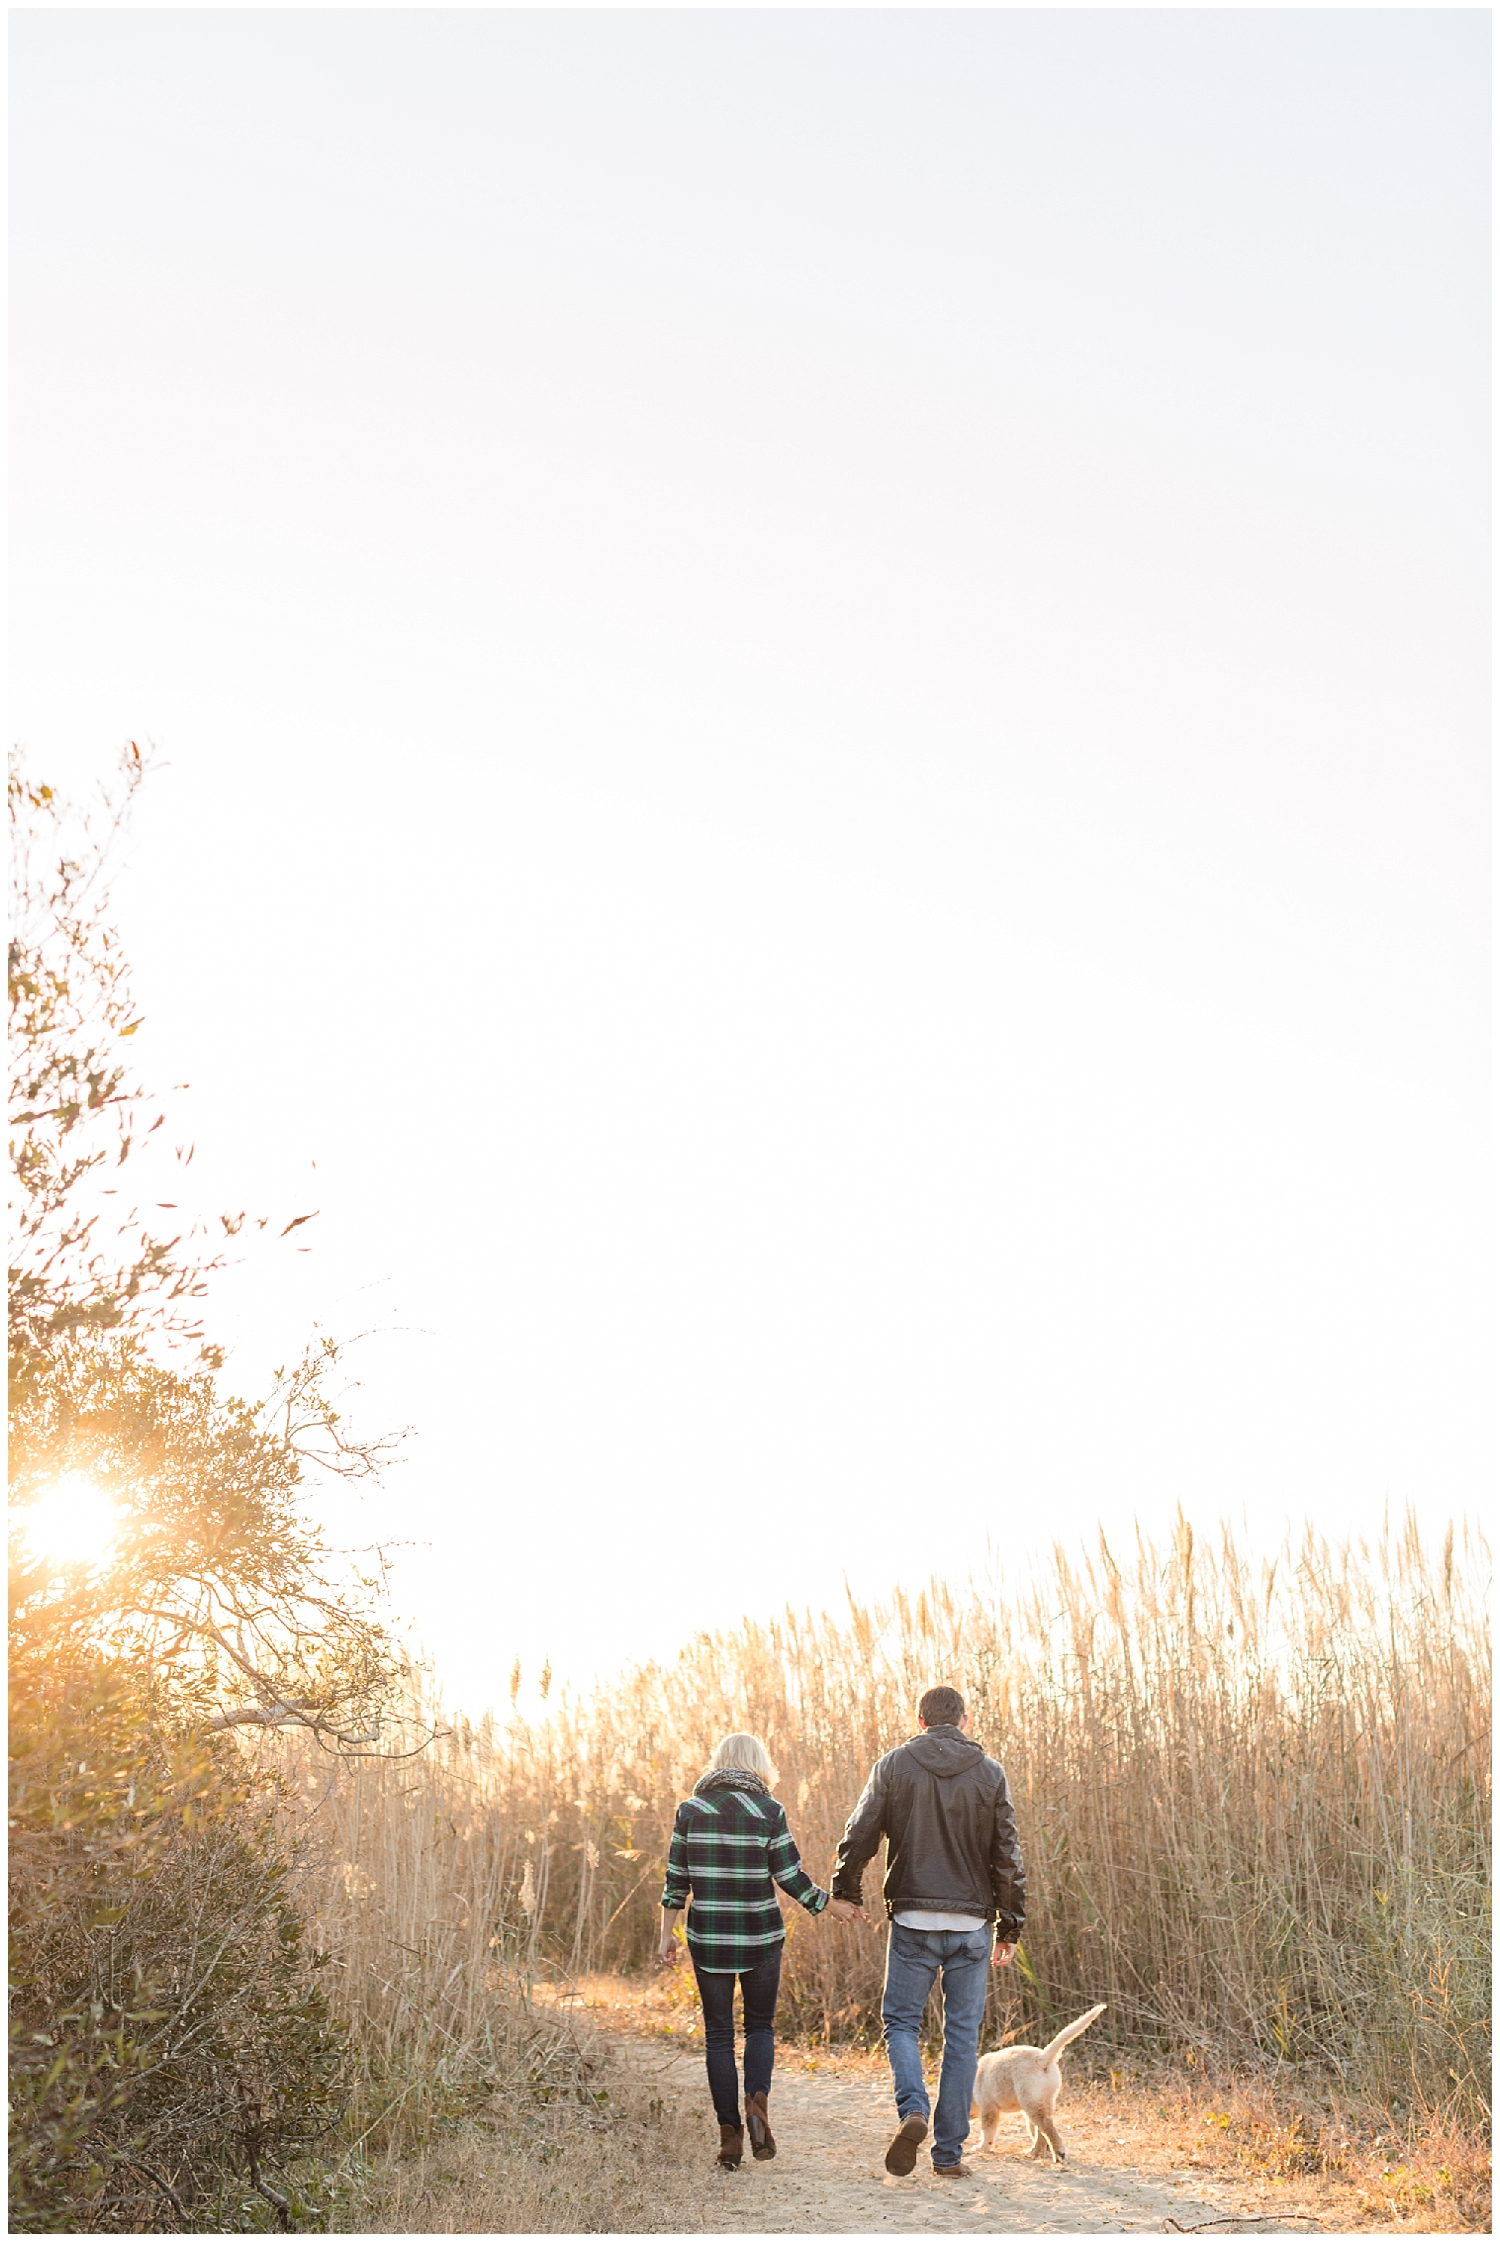 back bay virginia beach engagement session by elovephotos_1095.jpg